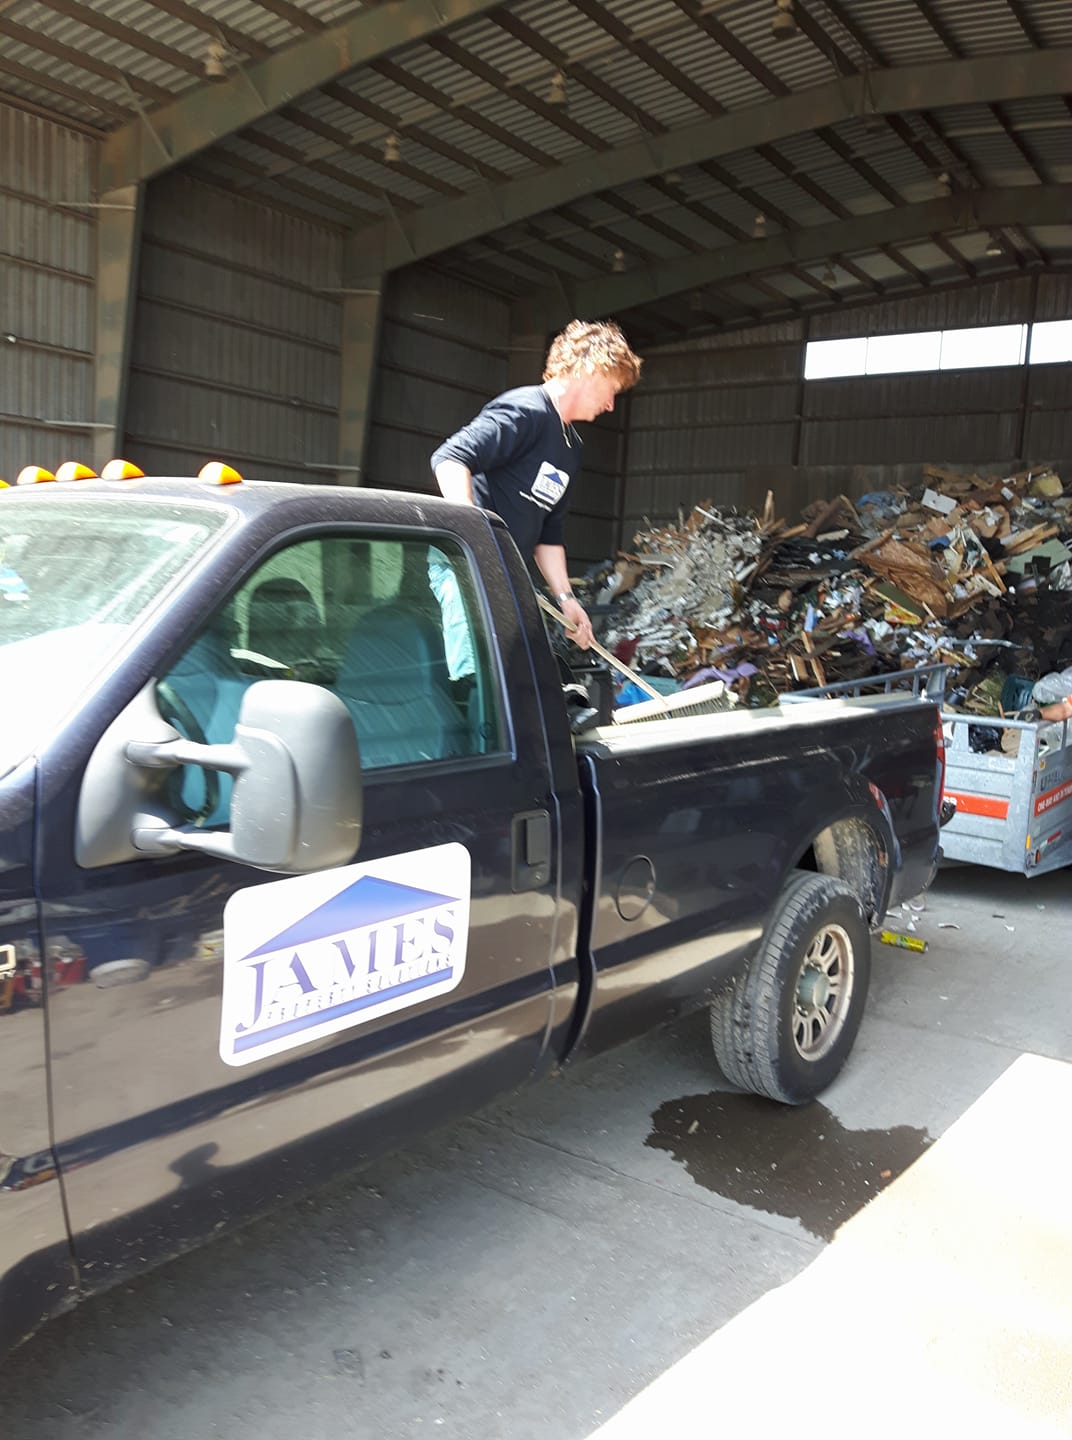 After home cleaning, we often end up doing a junk removal trip to the dump.